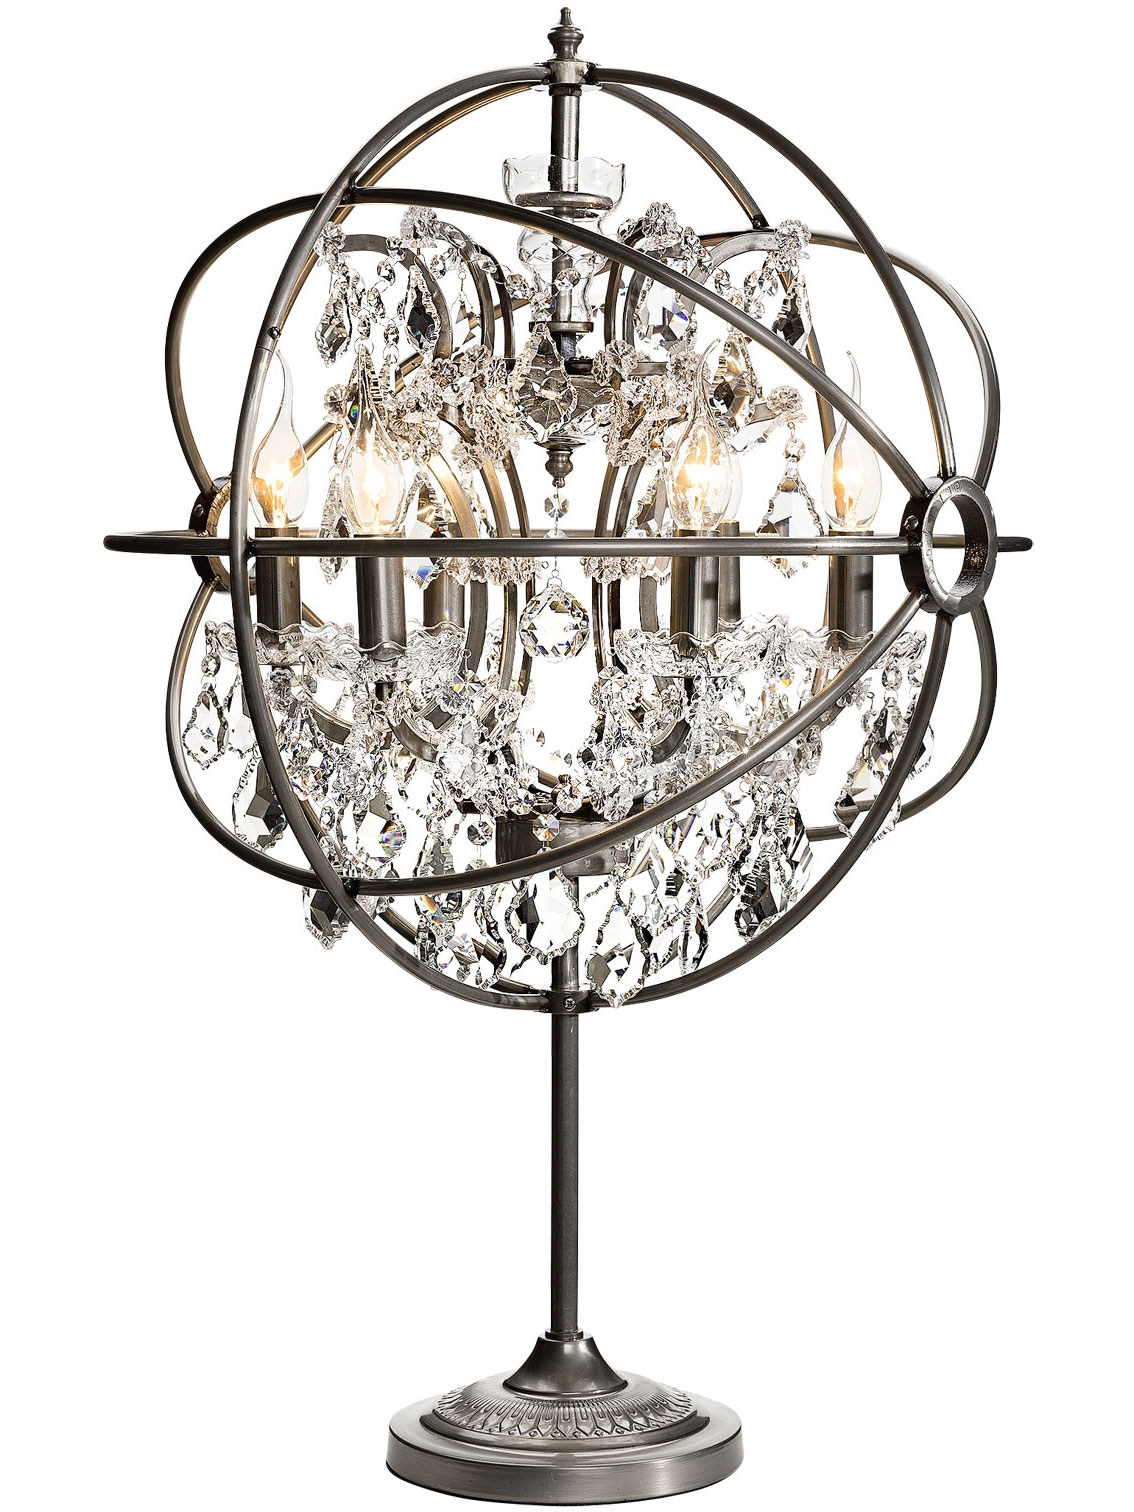 Chandelier Table Lamps Pertaining To Small Chandelier Table Lamps (View 4 of 25)